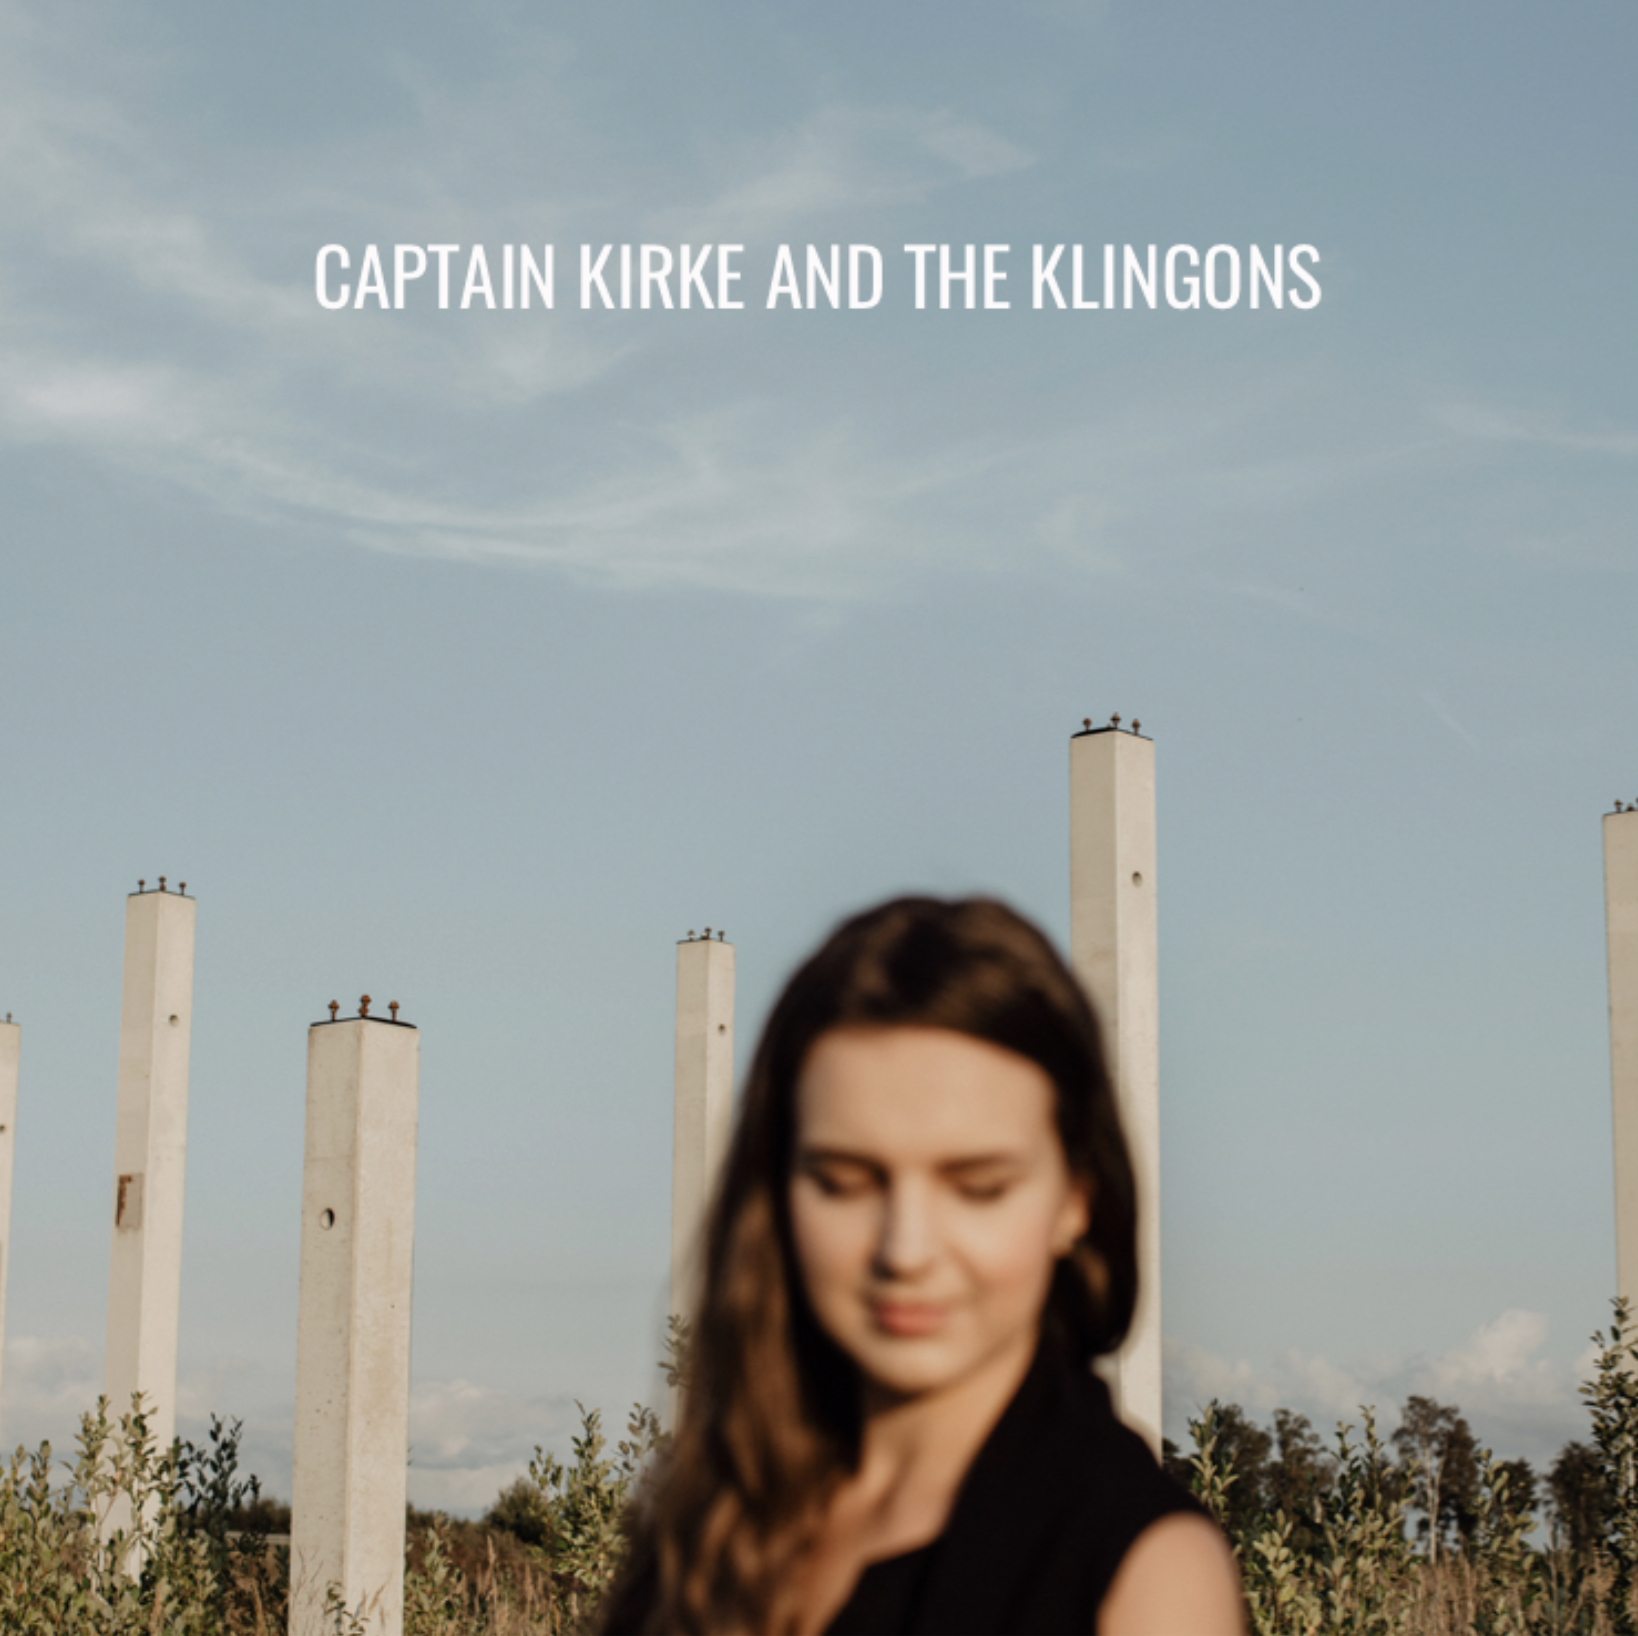 CAPTAIN KIRKE & THE KLINGONS - CAPTAIN KIRKE & THE KLINGONS (2019) - ESTONIA